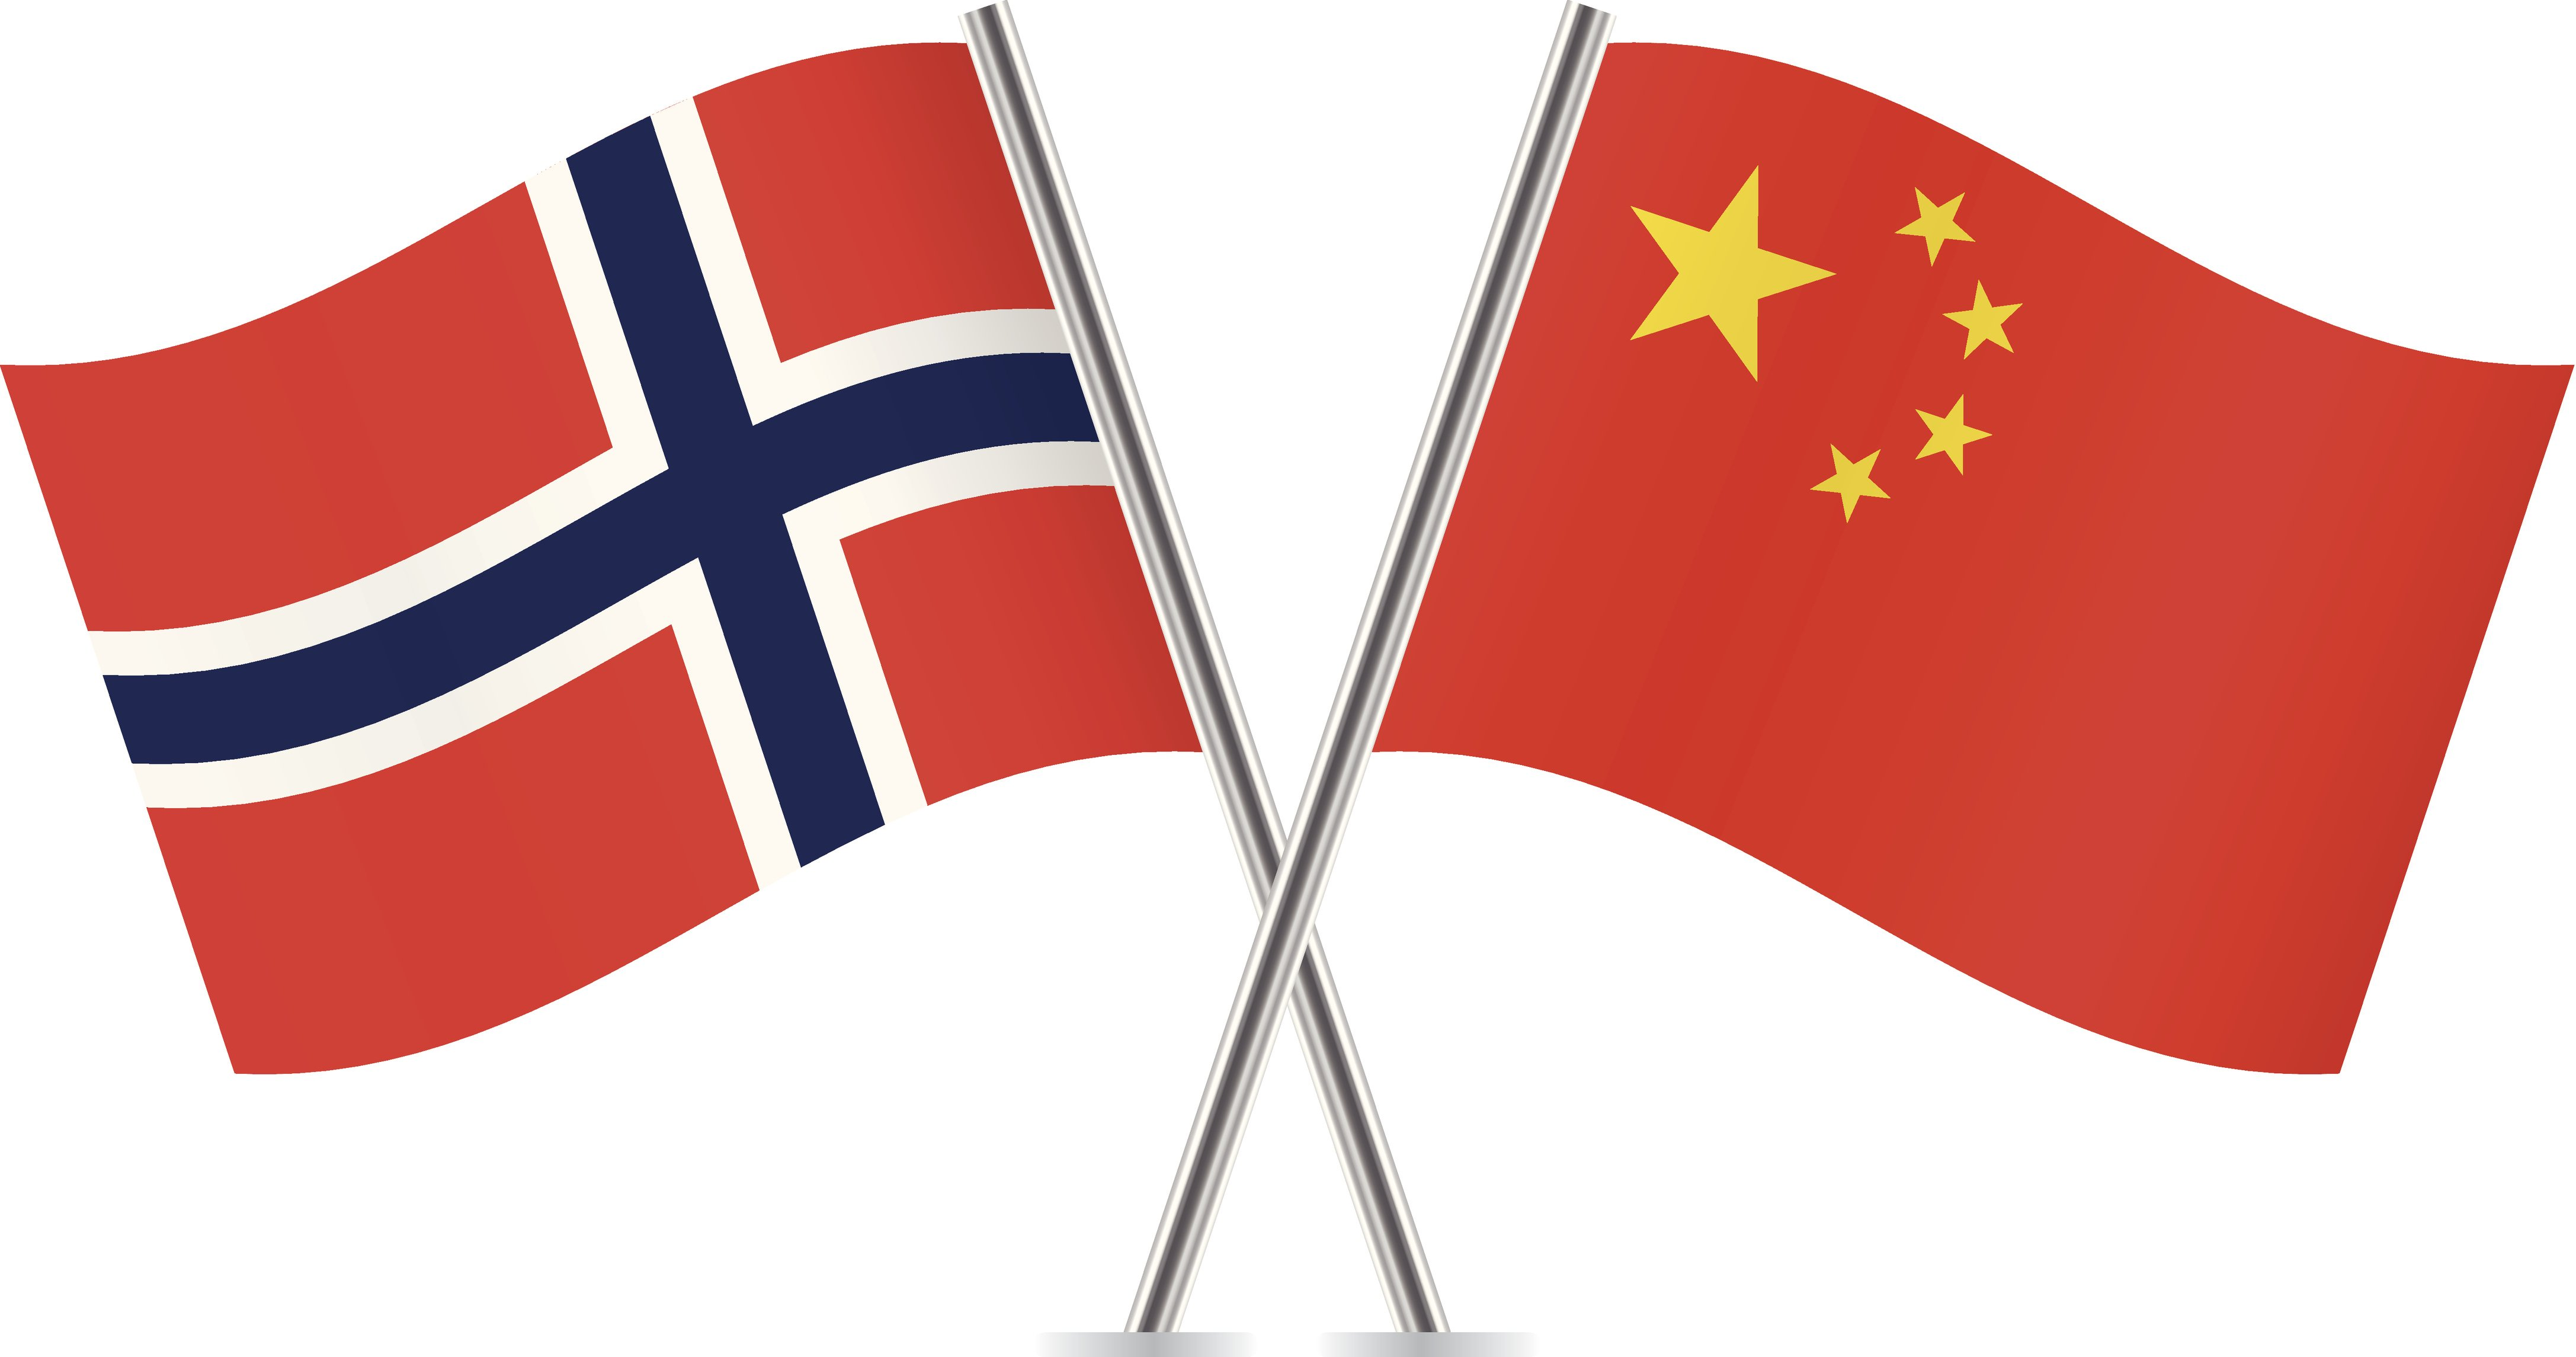 Norway deputy oil minister to meet China's CNOOC executives as Oslo-Beijing relations thaw